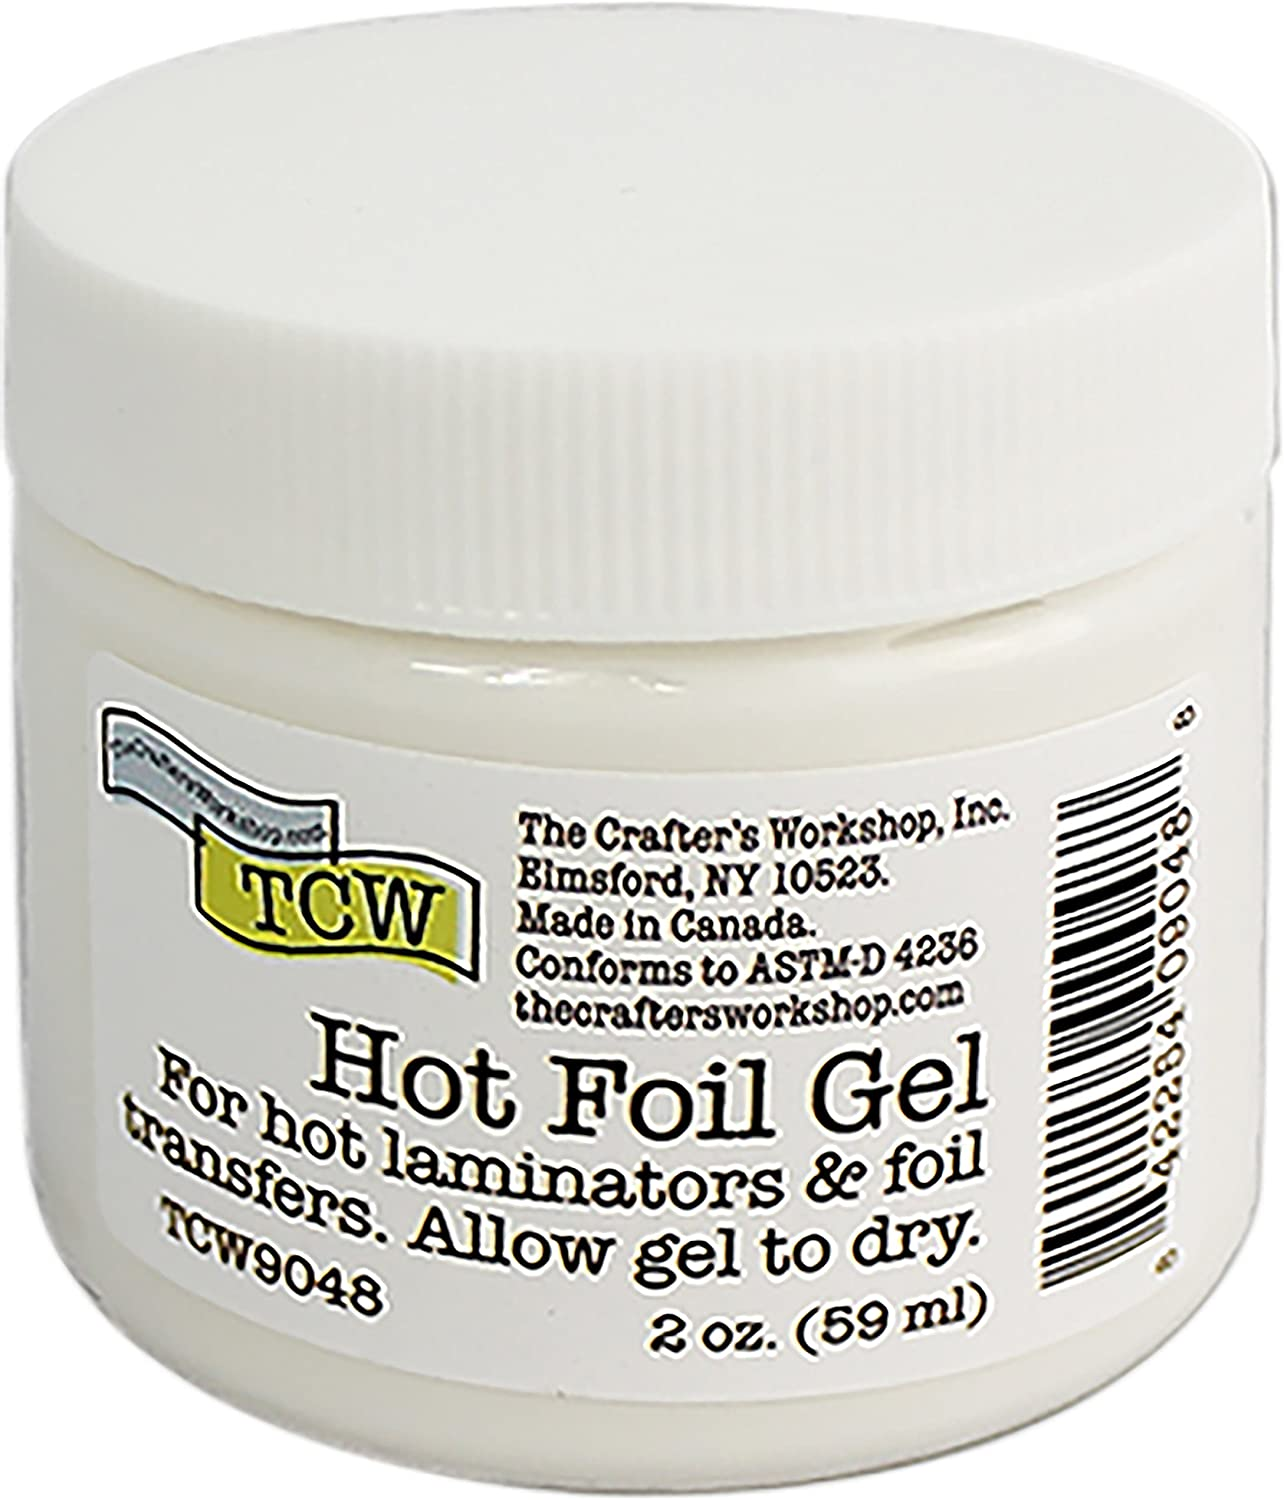 The Crafter's Workshop Hot Foil Gel